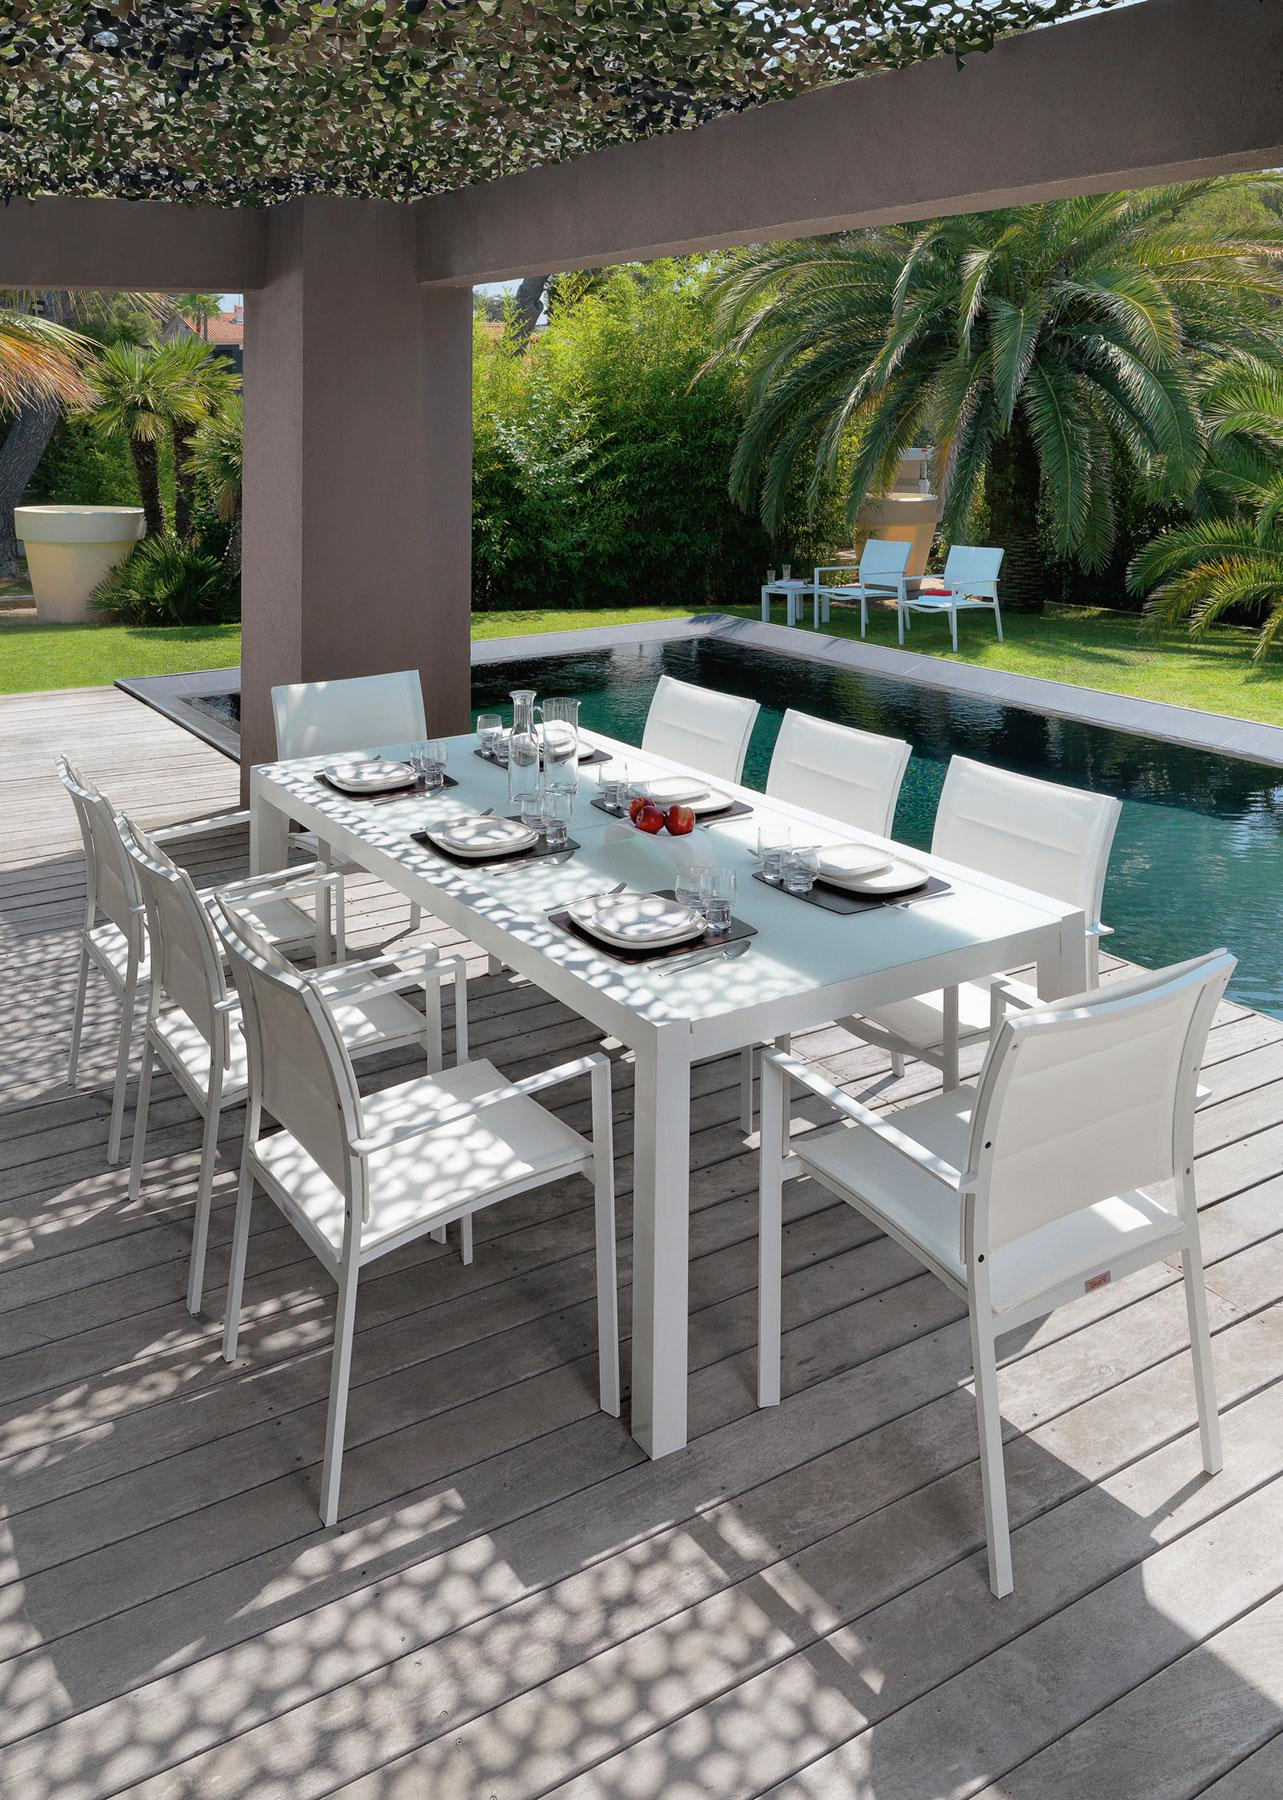 Sense Patio Extendable Table Outdoor Furniture Shop Online Italy Dream Design